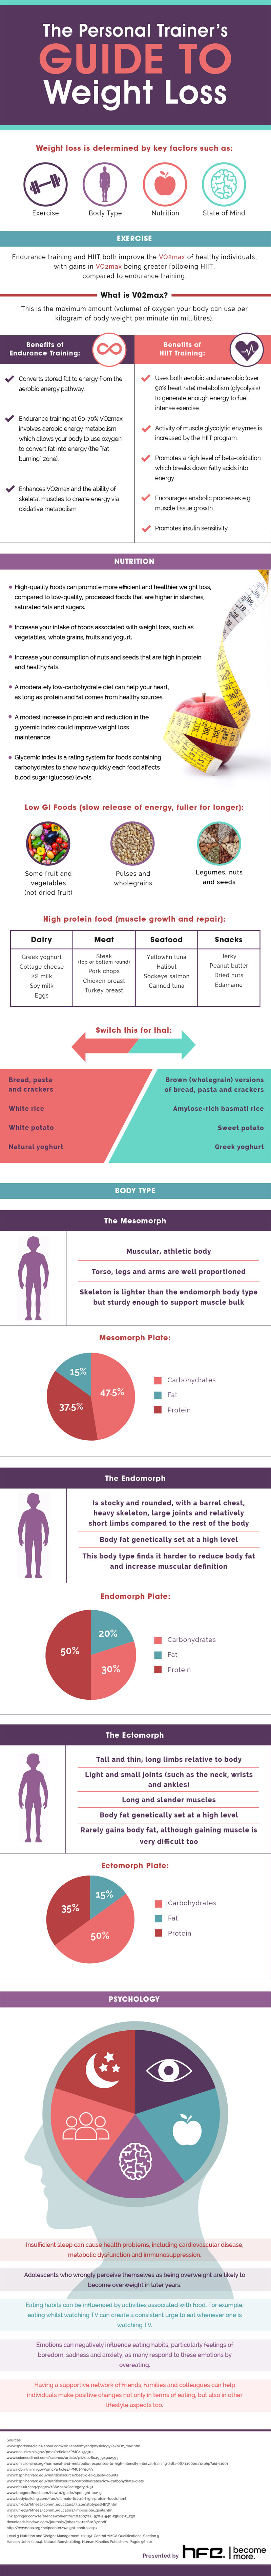 The personal trainer's guide to weight loss infographic